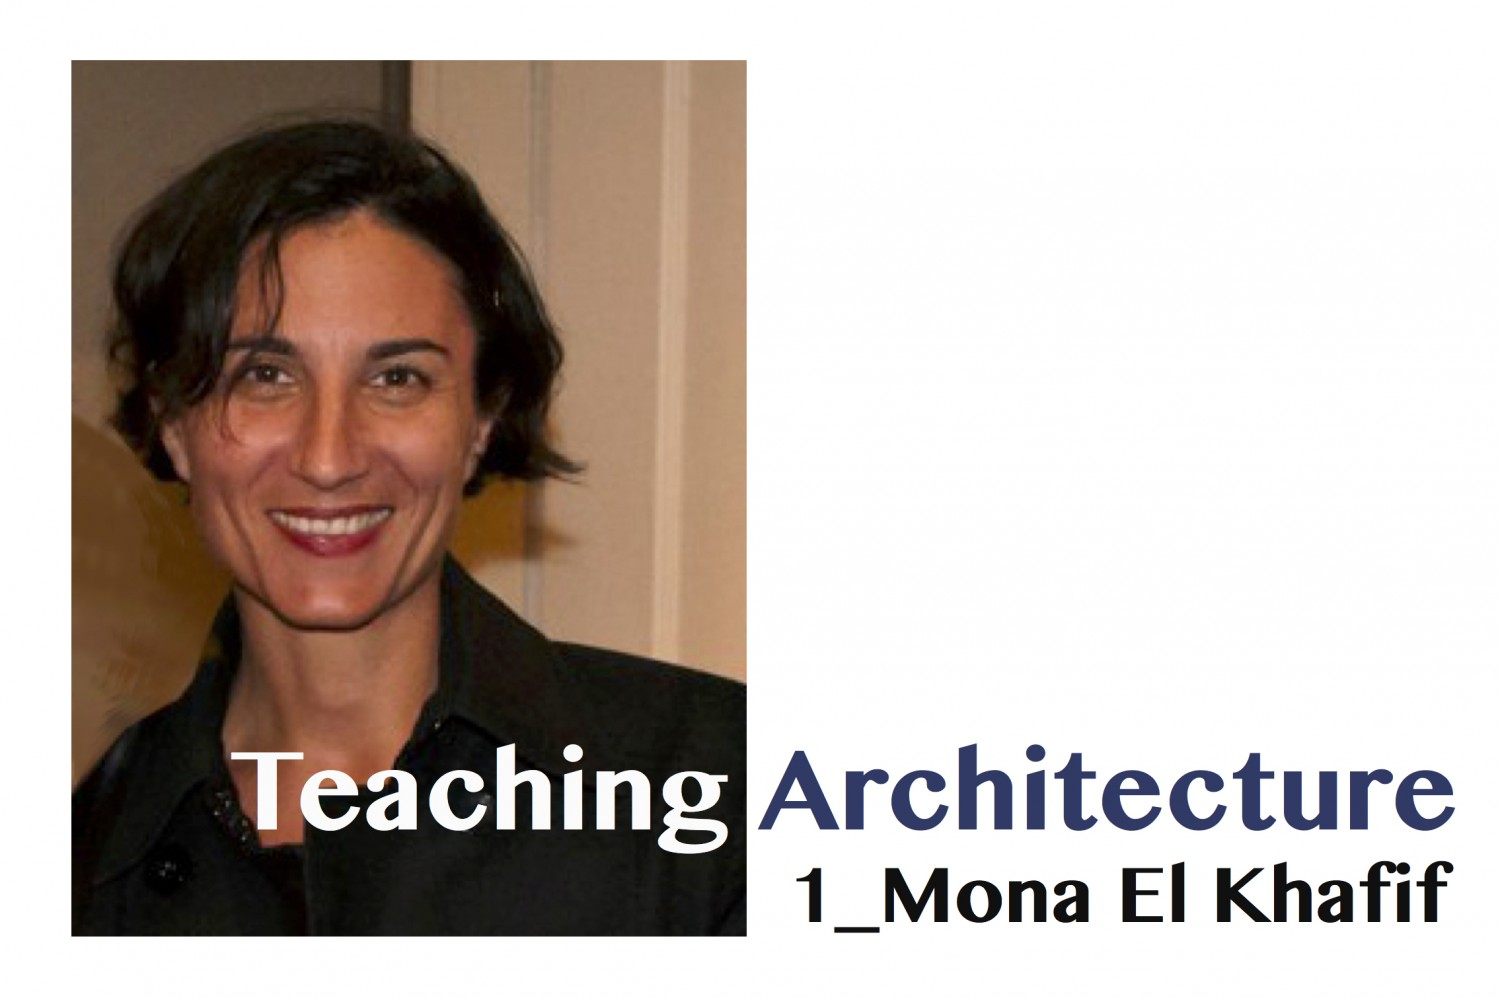 Teaching Architecture / Mona El Khafif